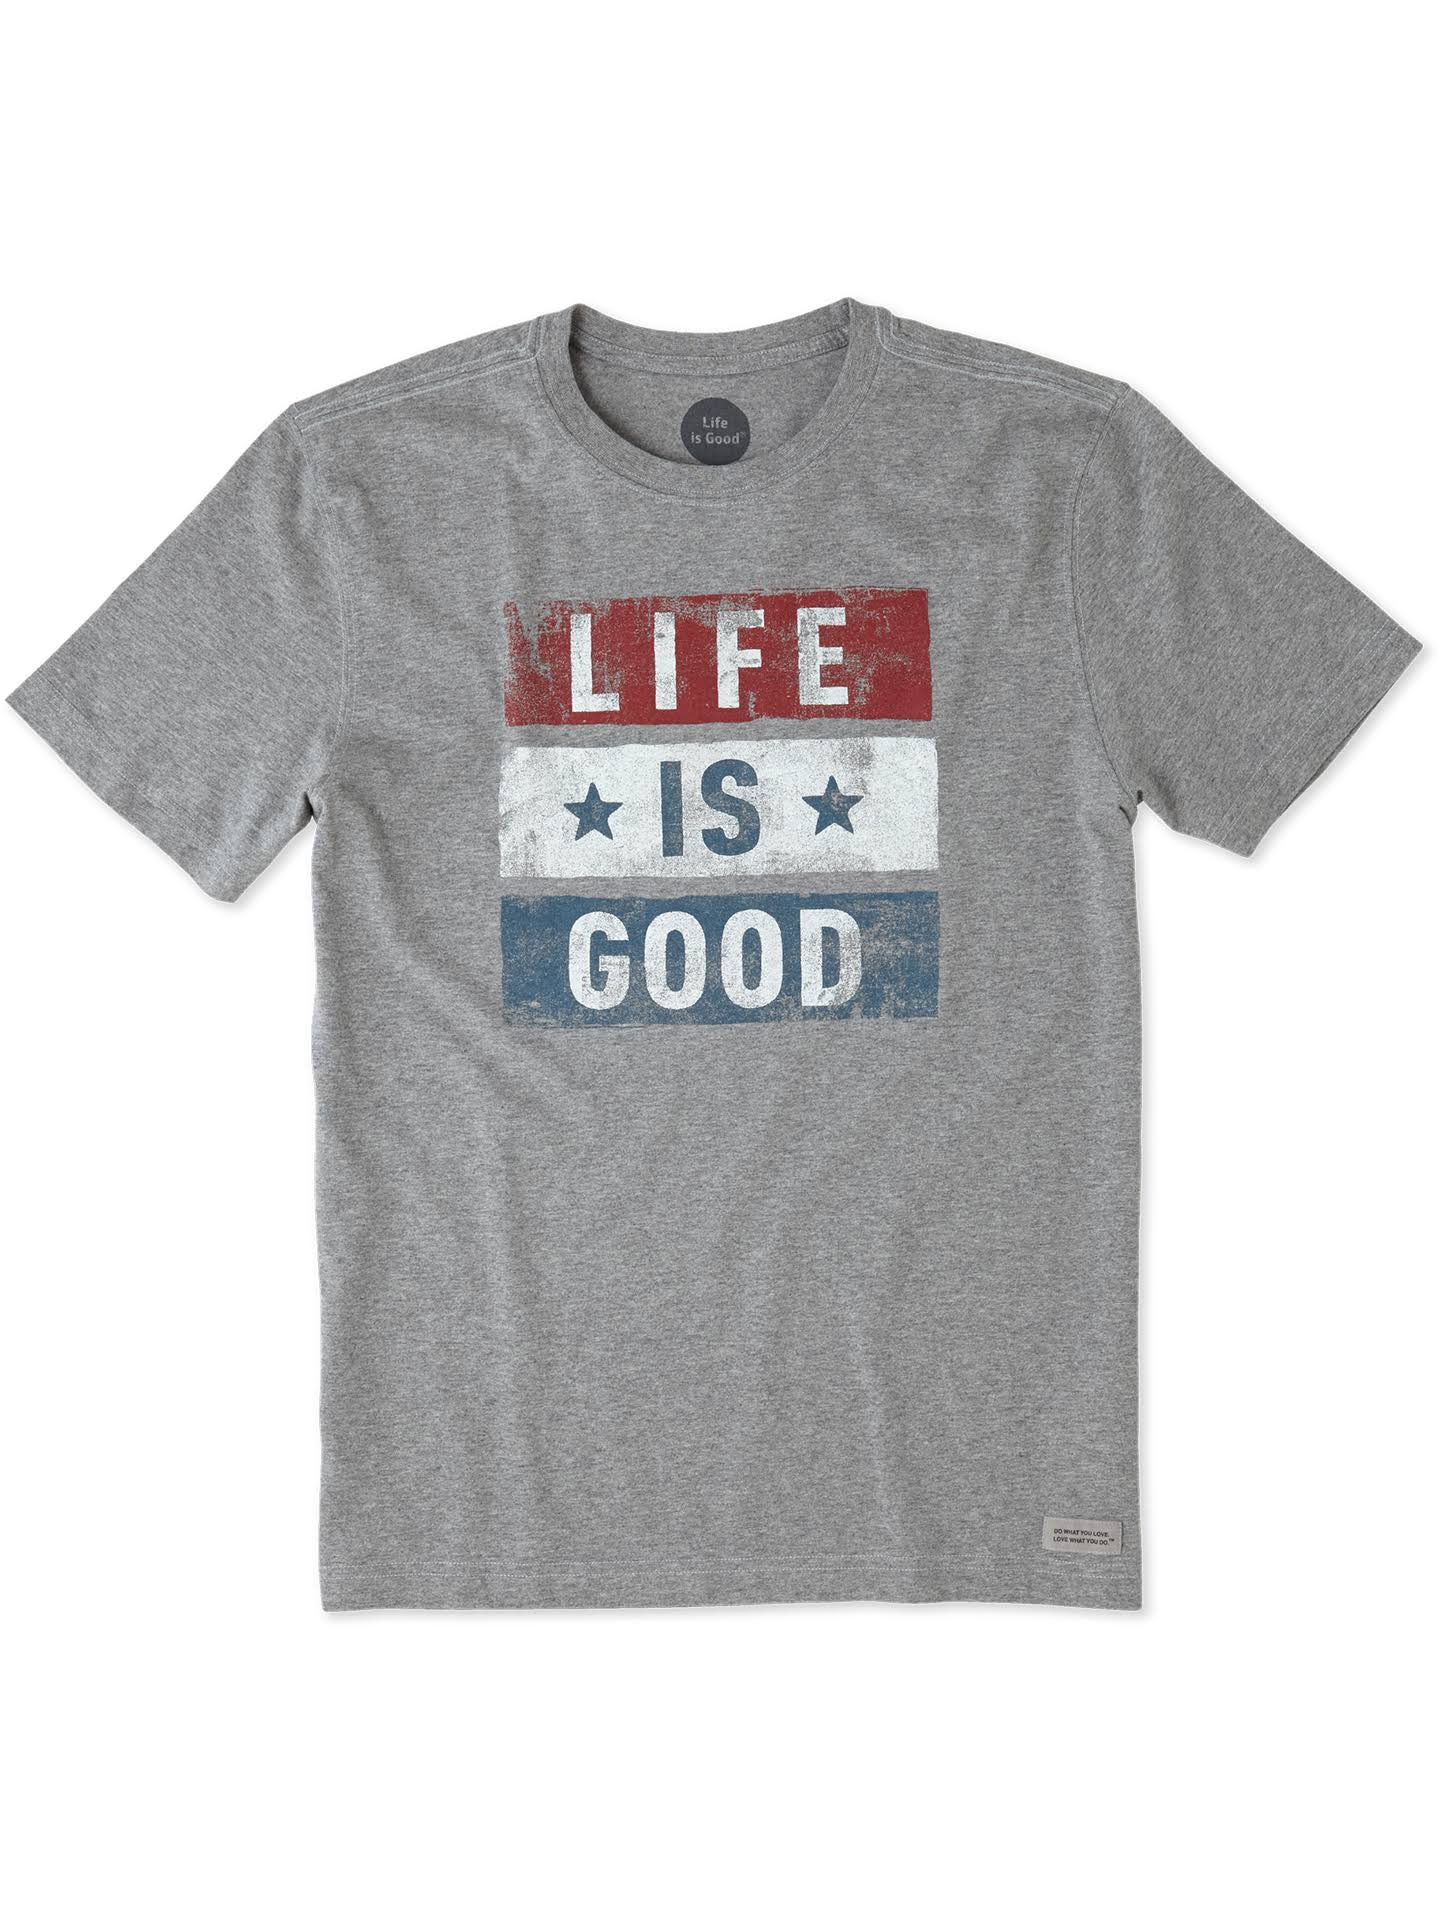 Life Is Good Men's Crusher Tee - Stars and Stripes LIG, Heather Gray, Medium